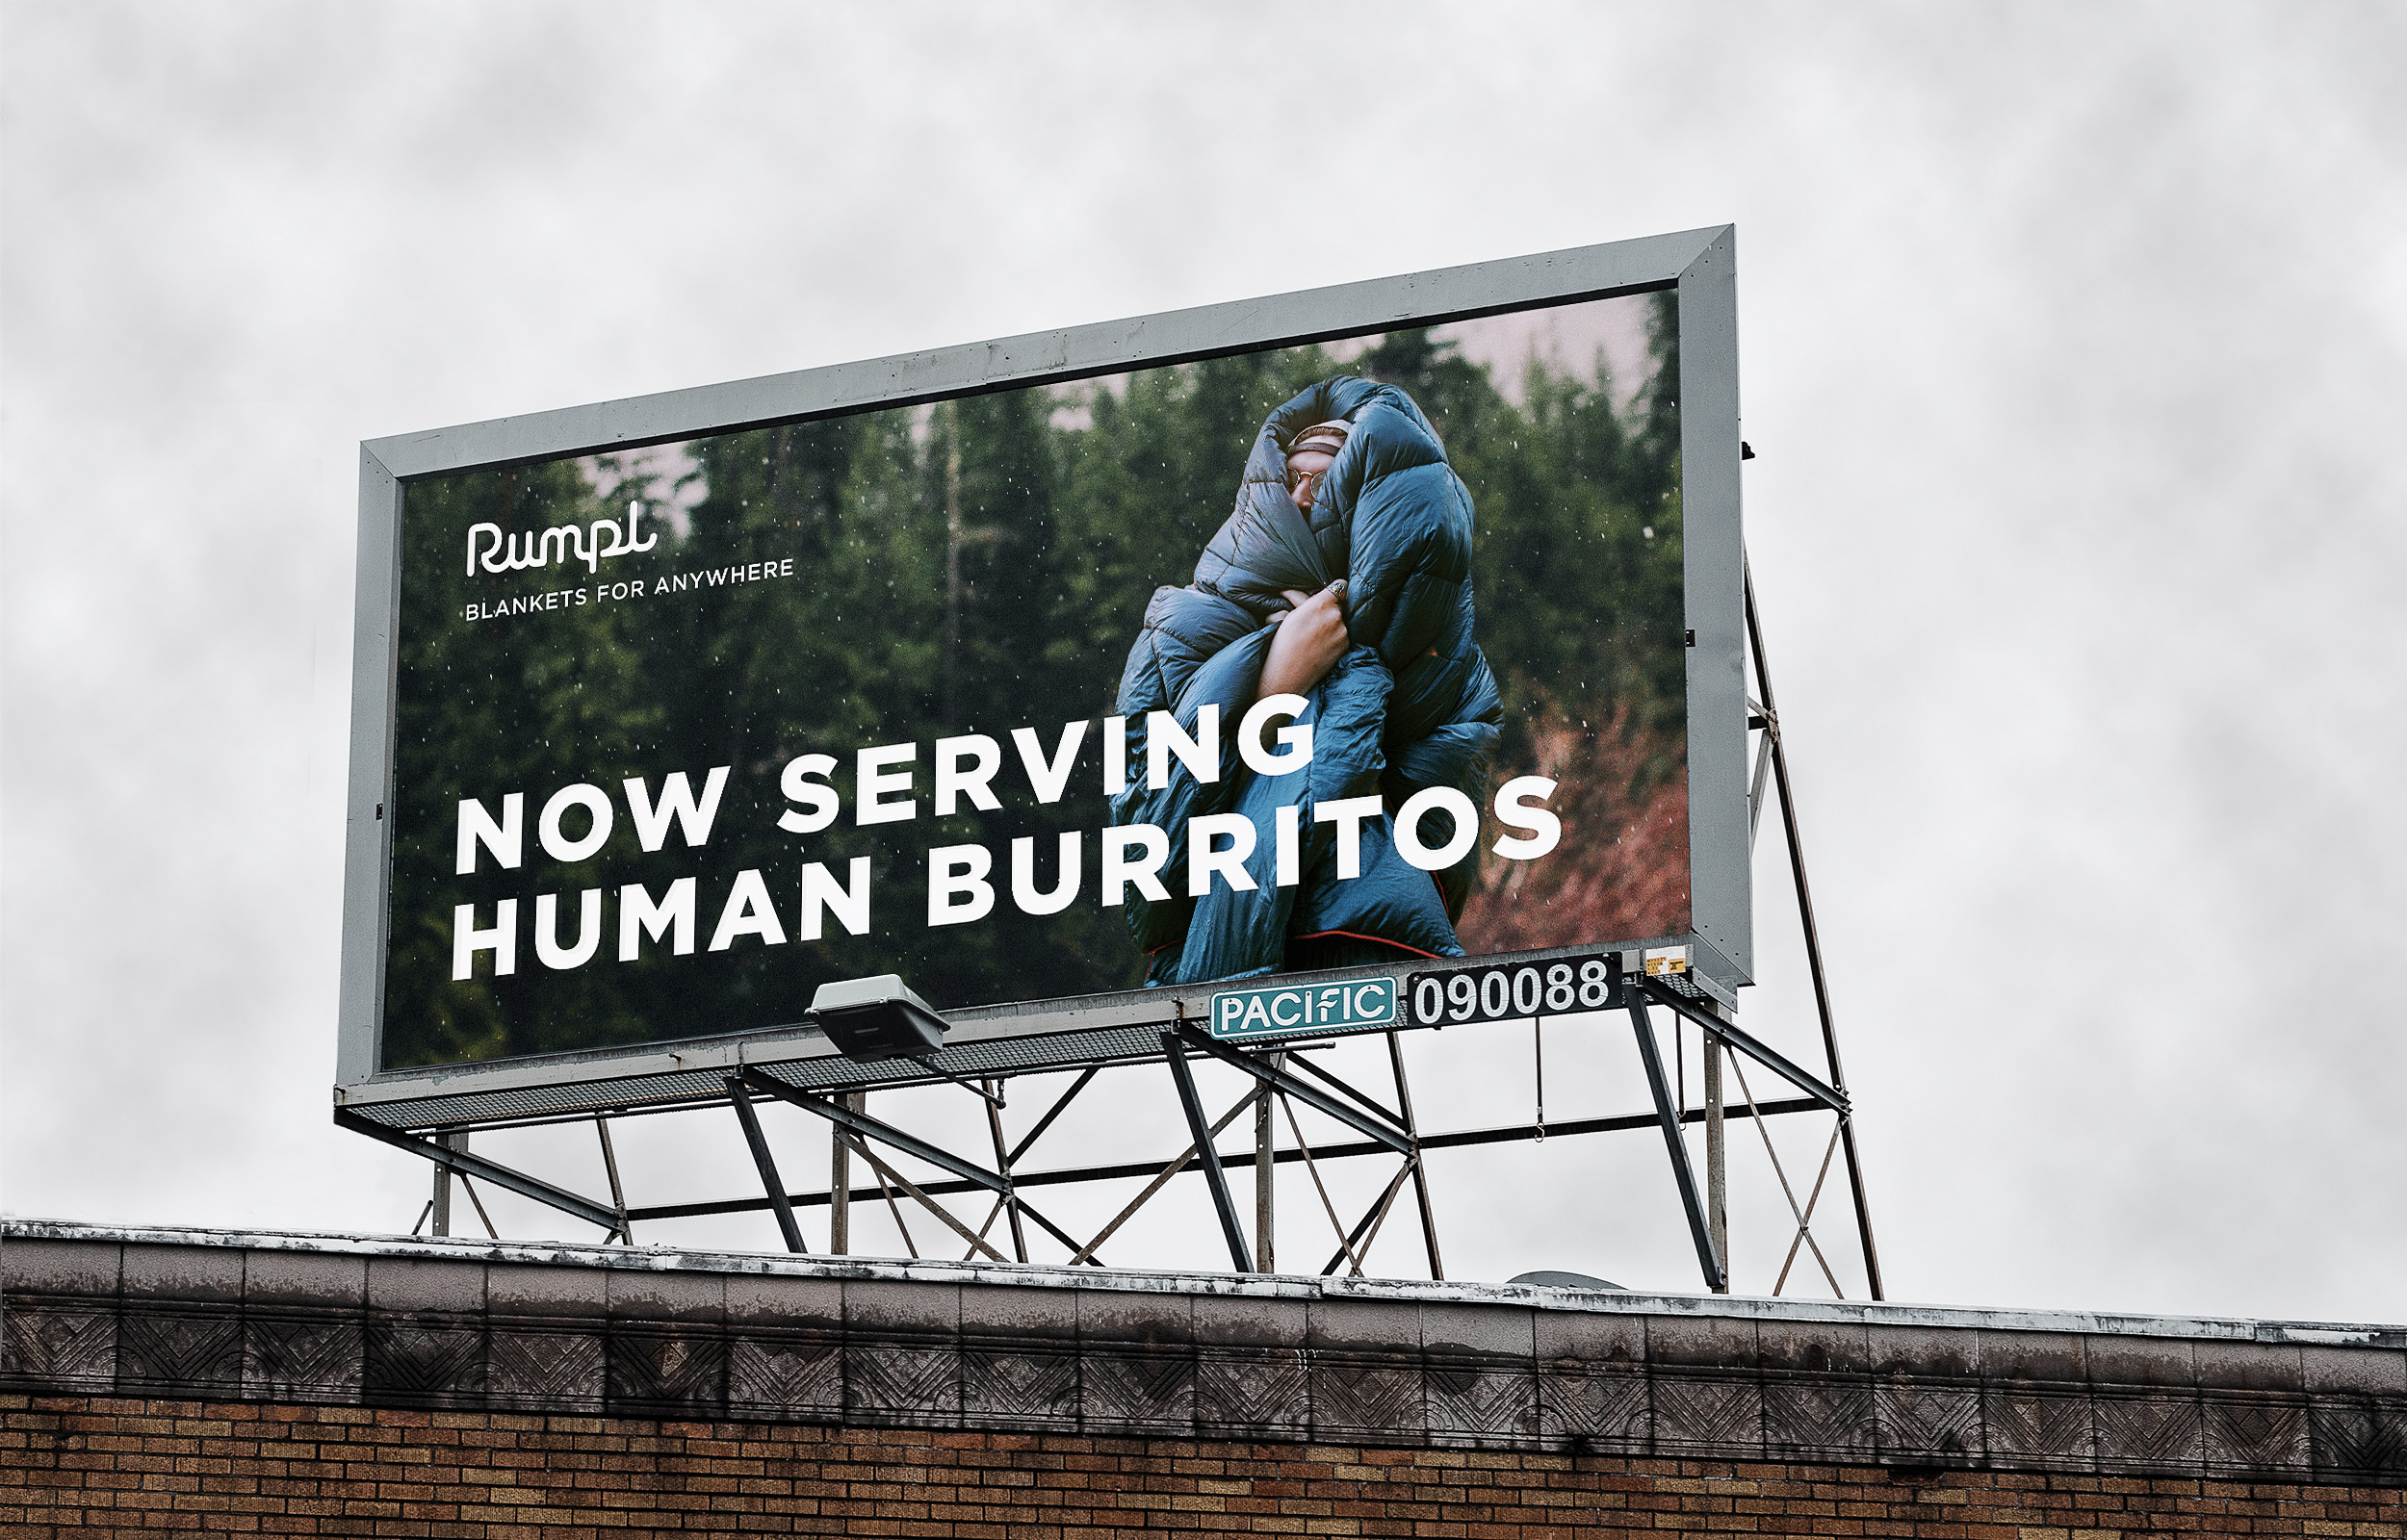 rumple_burritos_img.jpg